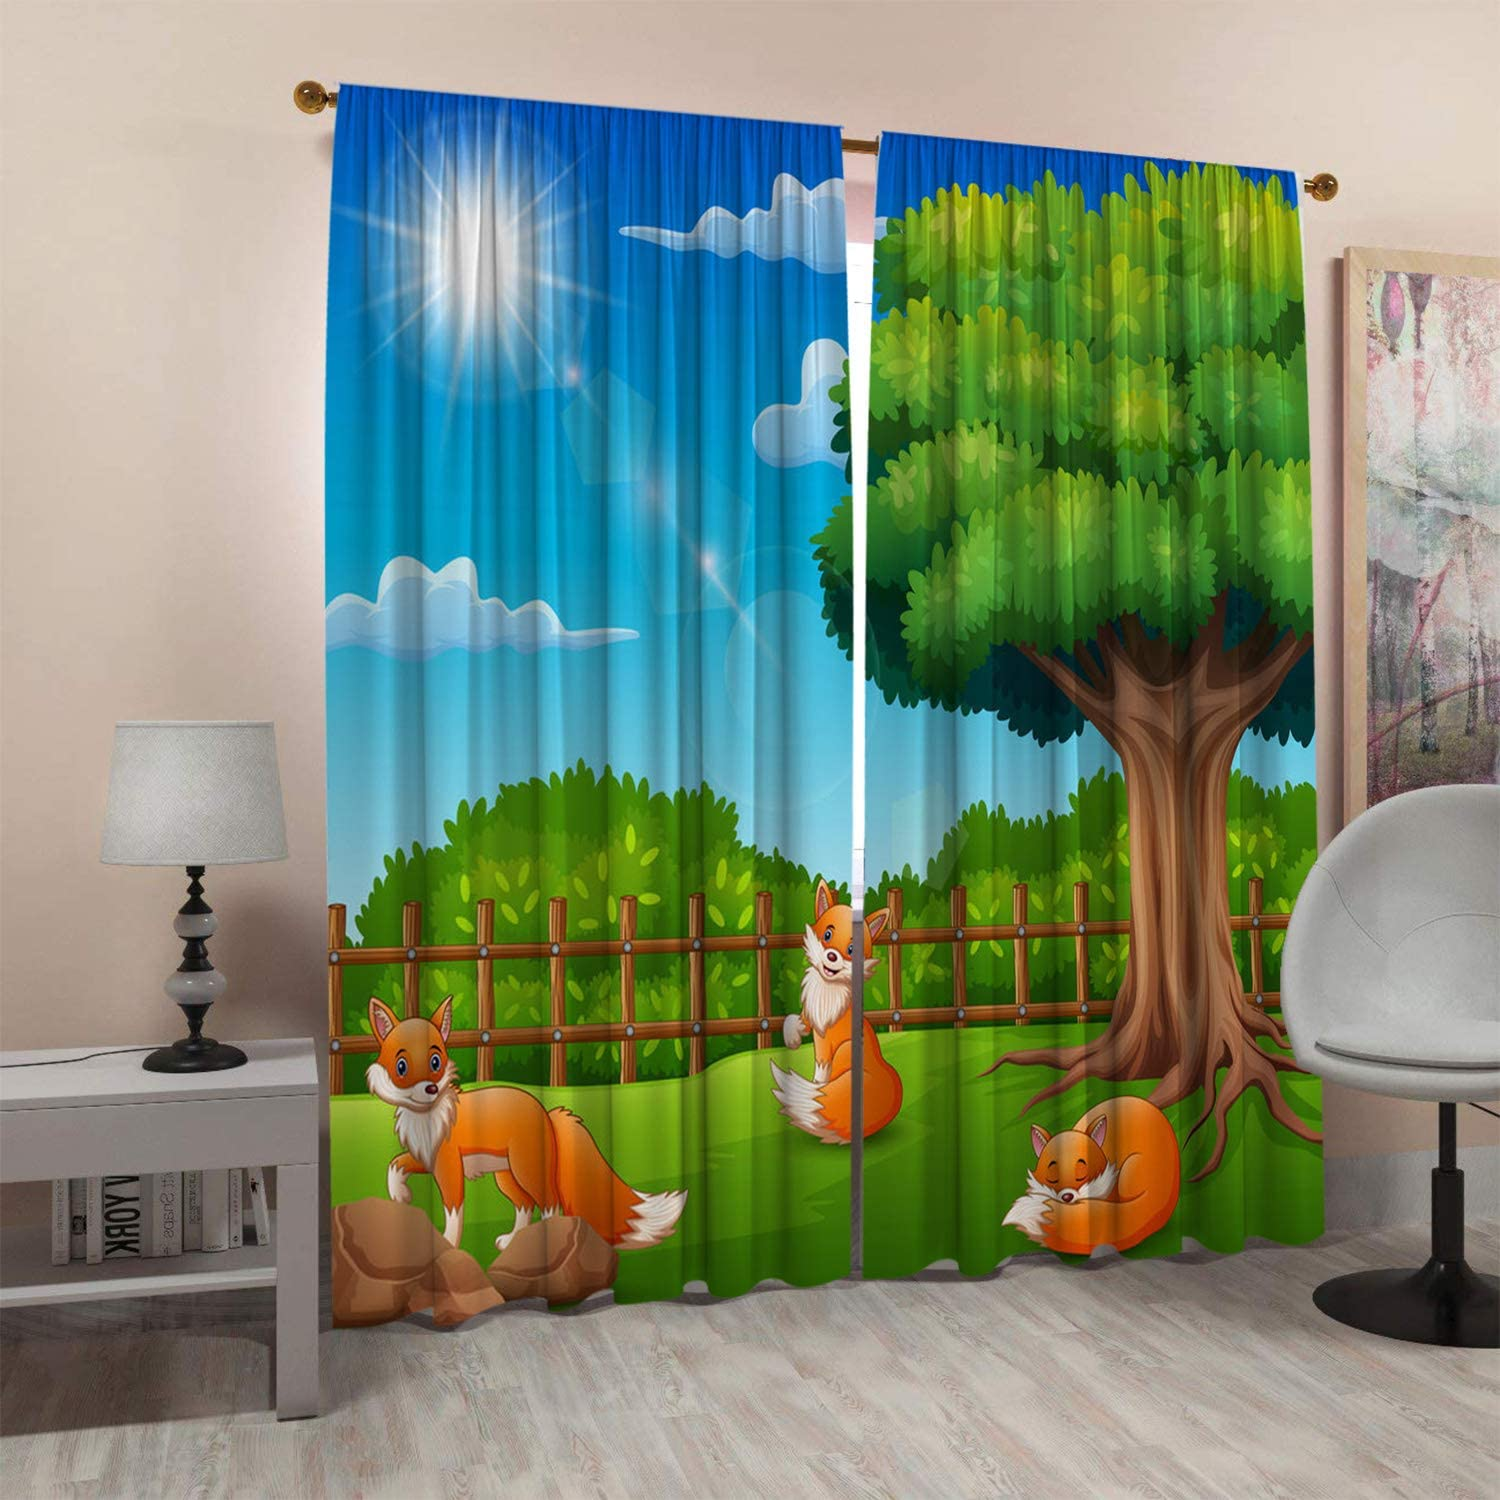 SeptSonne Kids Room Window Curtain Panels Drapes is A Cage to Enjoy Nature Kids Room Darkening Curtains Artwork Customized Curtains 52x63 Inch